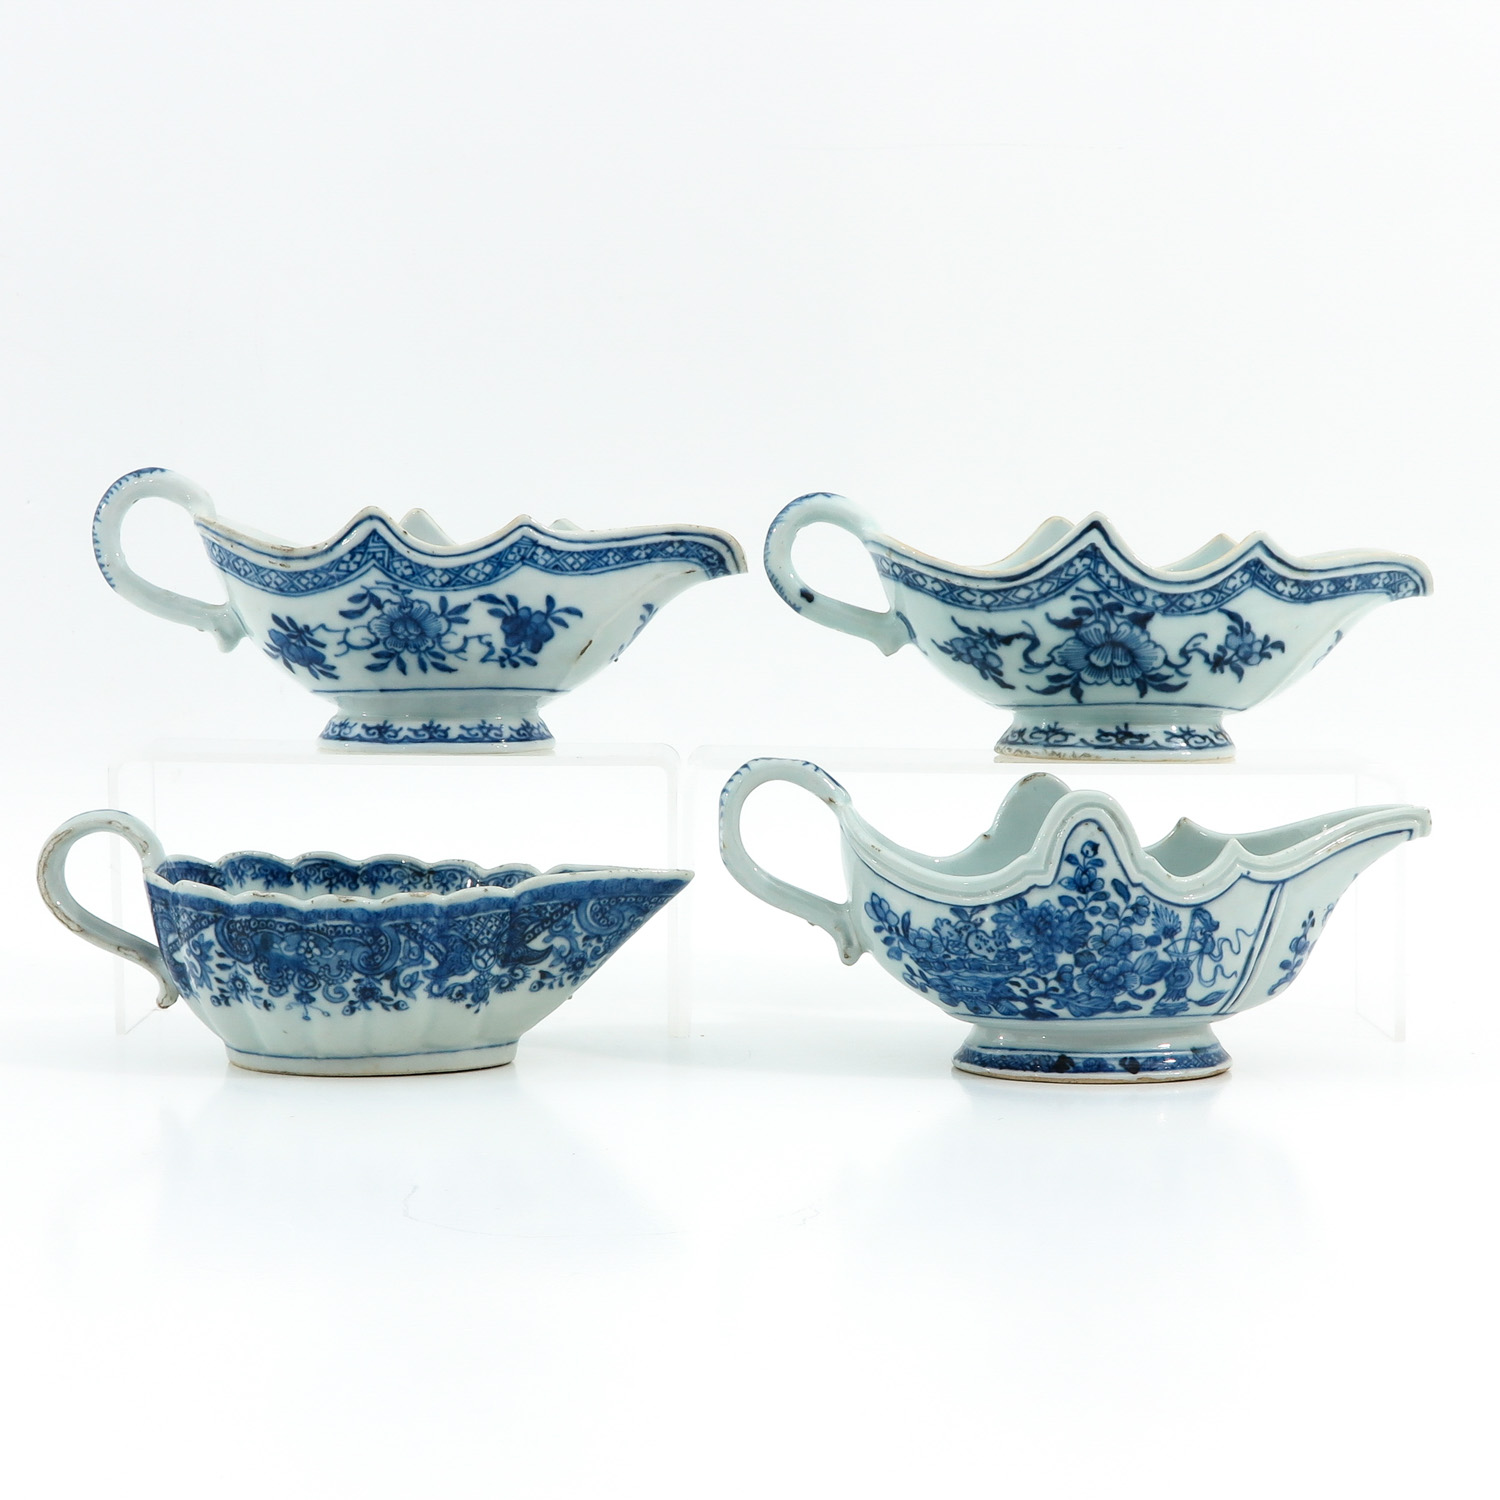 A Collection of Export Porcelain - Image 3 of 9